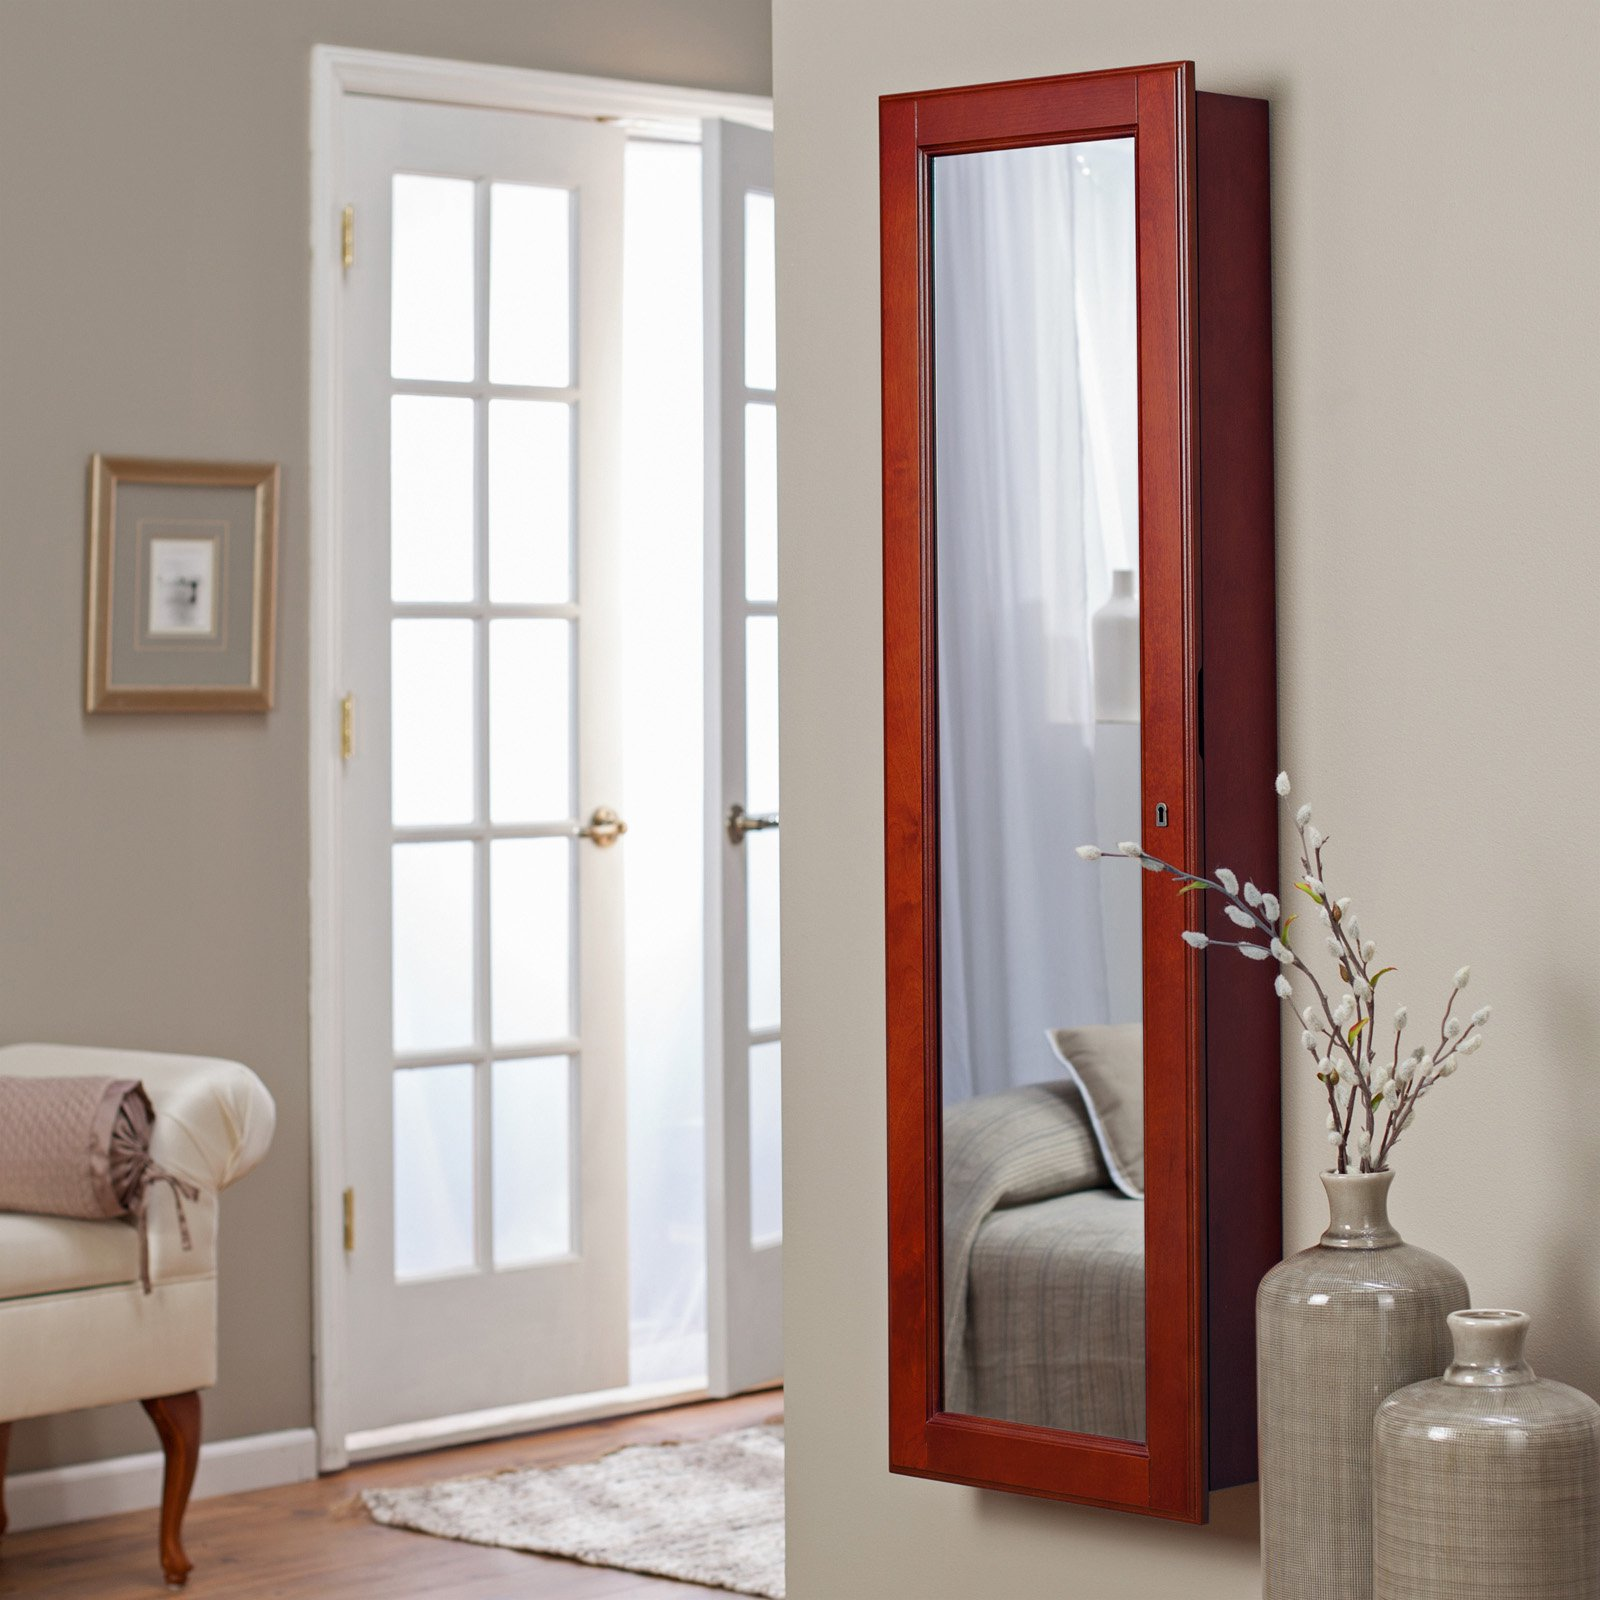 Charming Wooden Standing Mirror Jewelry Armoire Without Stand In Red On Wooden Floor Before The Gainsboro Wall For Living Room Decor Ideas